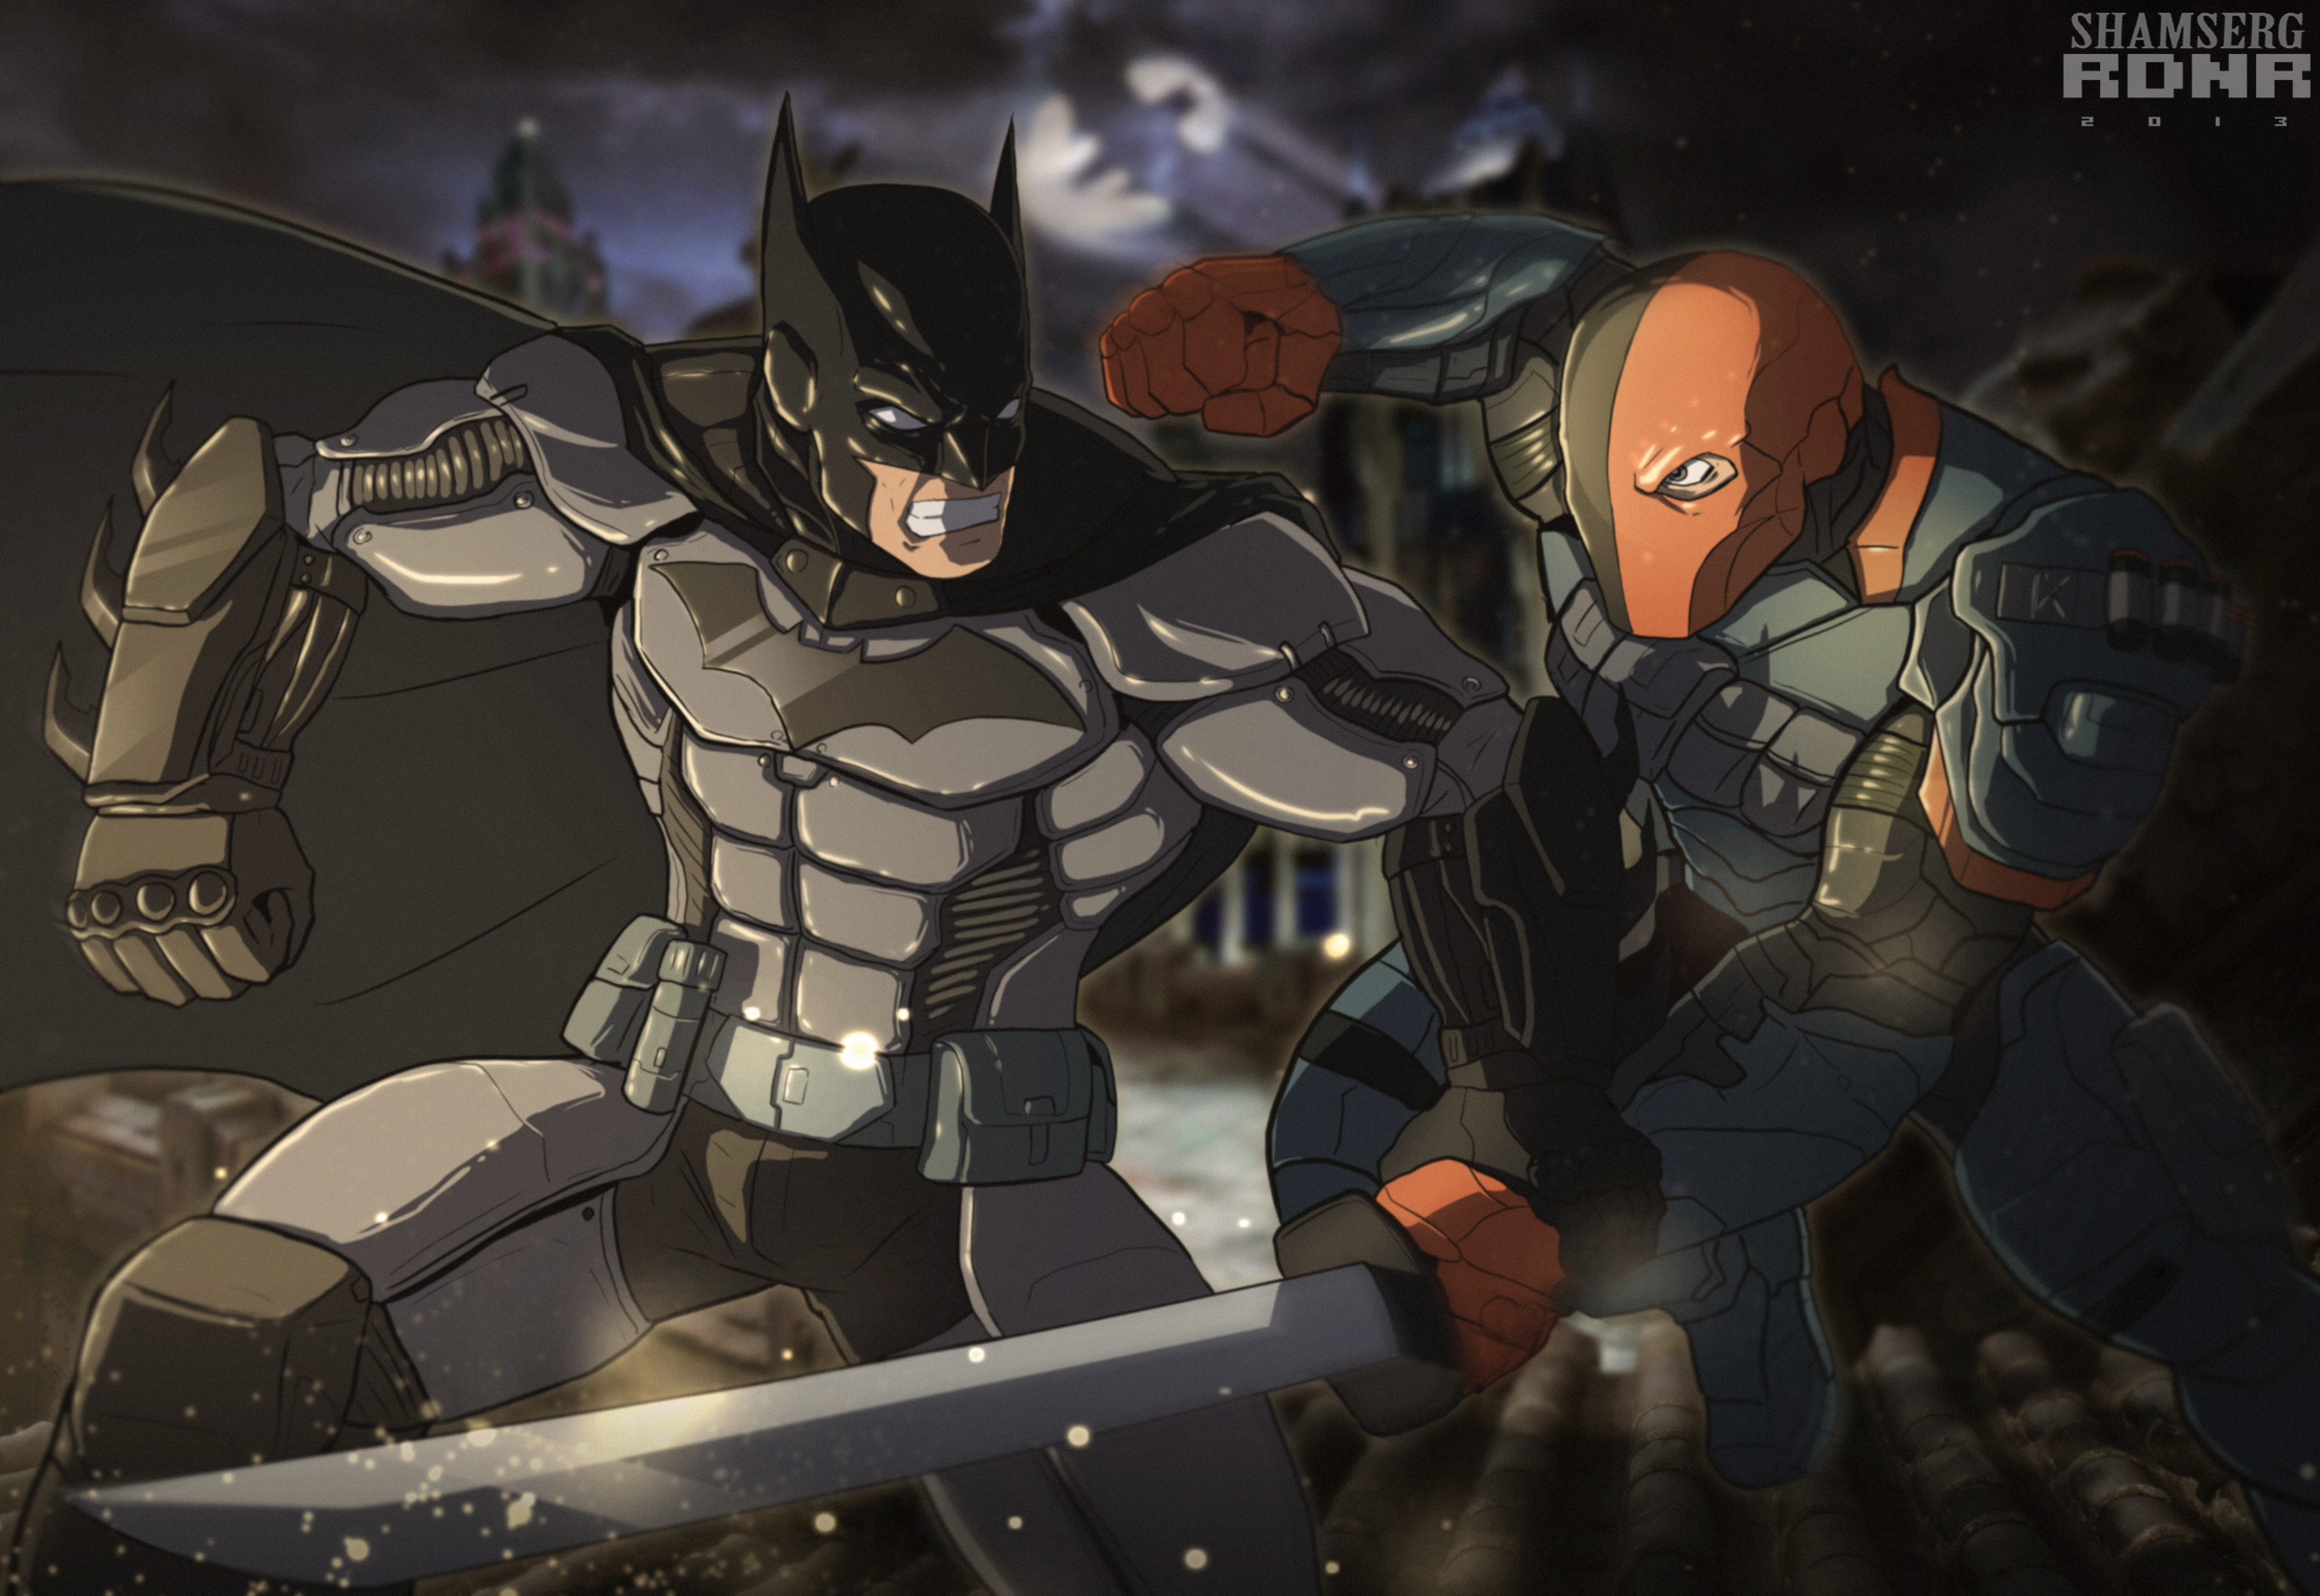 batman vs deathstroke artwork 4k 1548527193 - Batman Vs Deathstroke Artwork 4k - supervillain wallpapers, superheroes wallpapers, hd-wallpapers, deviantart wallpapers, deathstroke wallpapers, batman wallpapers, artwork wallpapers